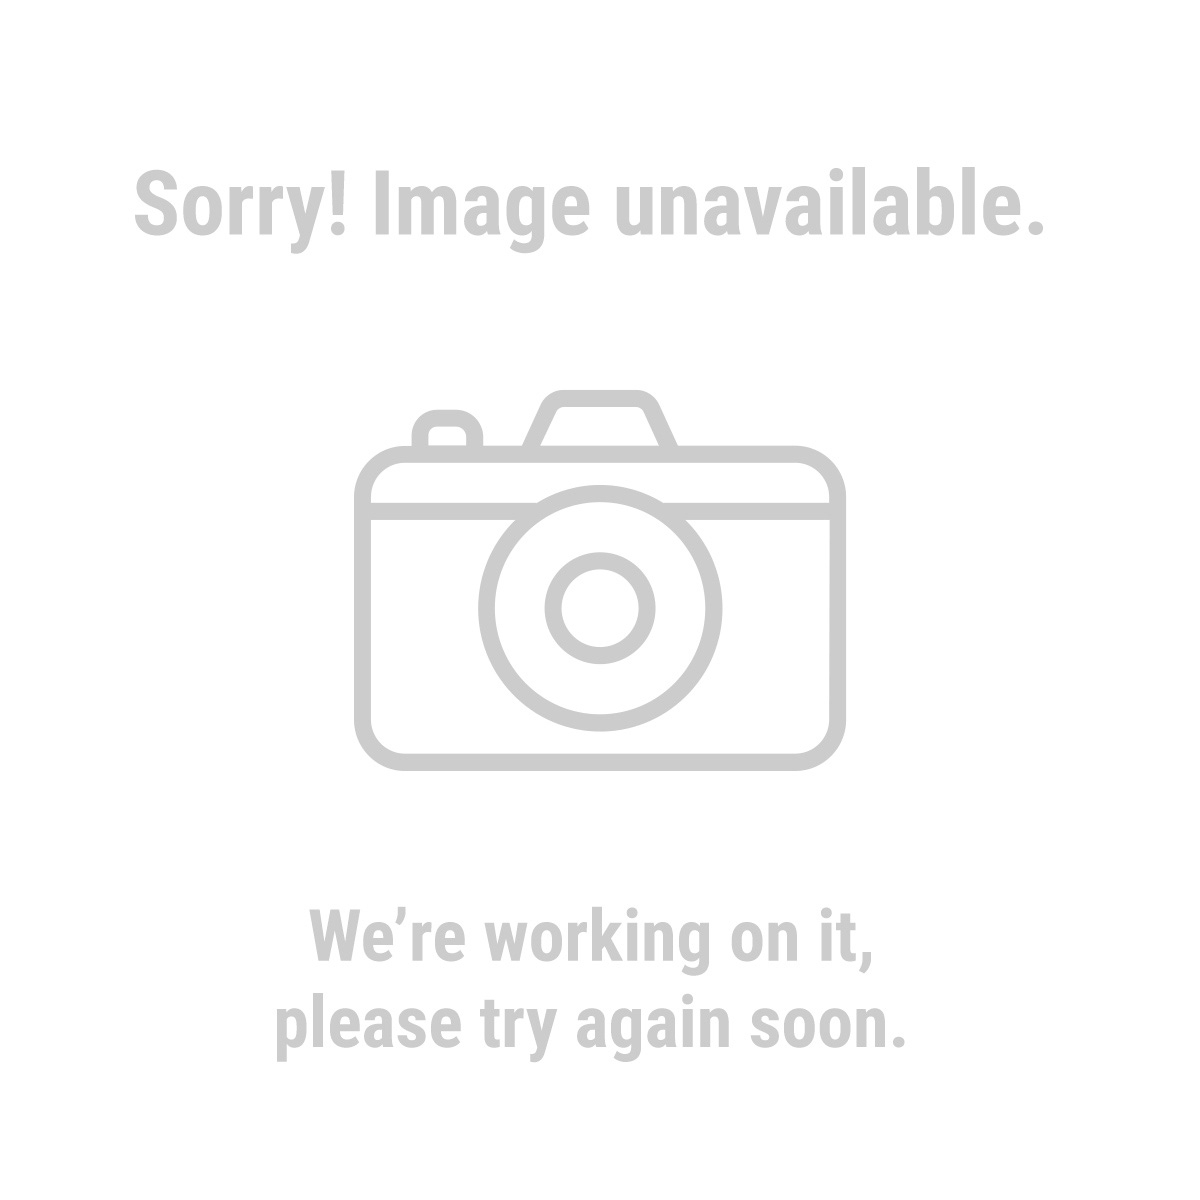 Central Pneumatic 67708 2.5 Horsepower, 10 Gallon, 125 PSI Air Compressor